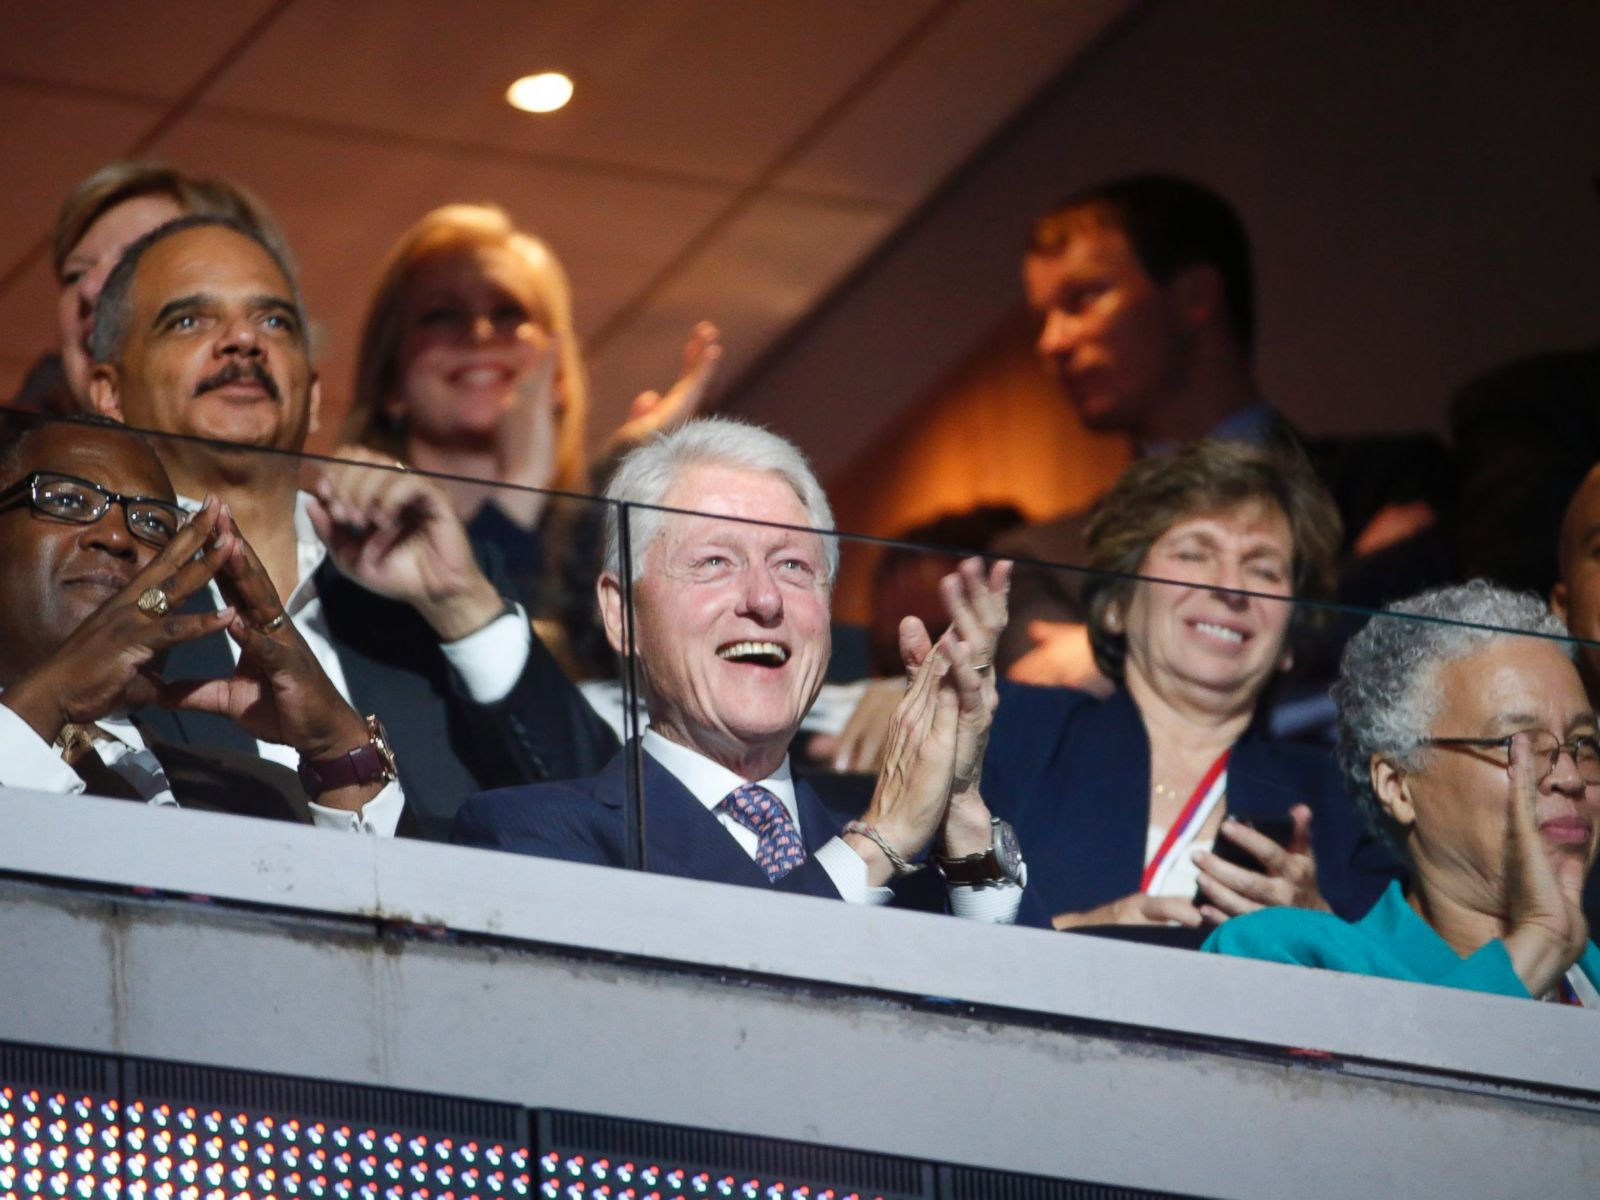 PHOTO: Former US President Bill Clinton listens as US First Lady Michelle Obama delivers remarks in the Wells Fargo Center on the first day of the 2016 Democratic National Convention (DNC) in Philadelphia, July 25, 2016.